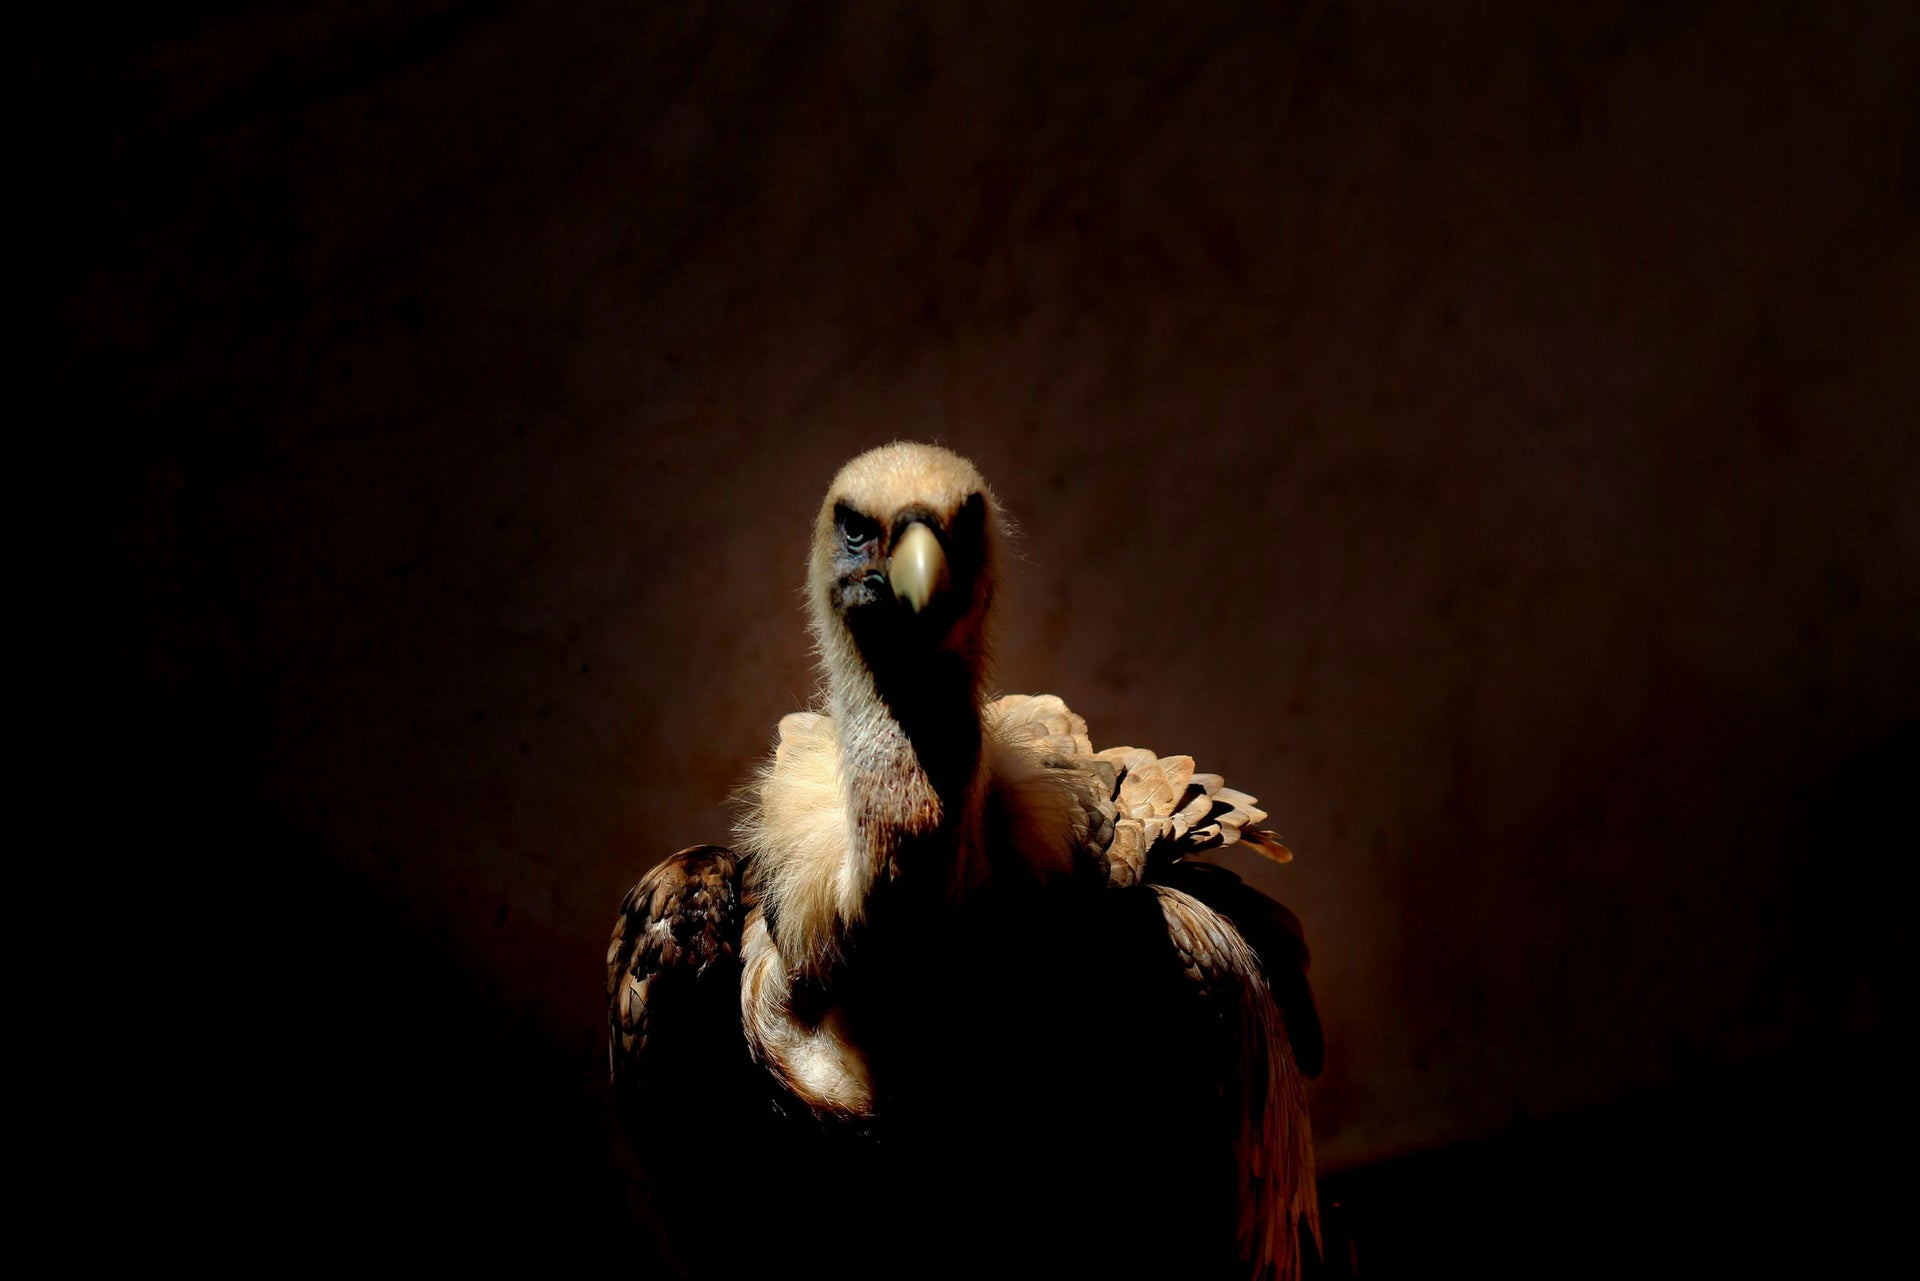 A Griffon vulture recuperates at the Wild Animal Hospital run by the Nature and Parks Authority, September 2014 (First Prize in Wild Animals in Controlled Conditions category).